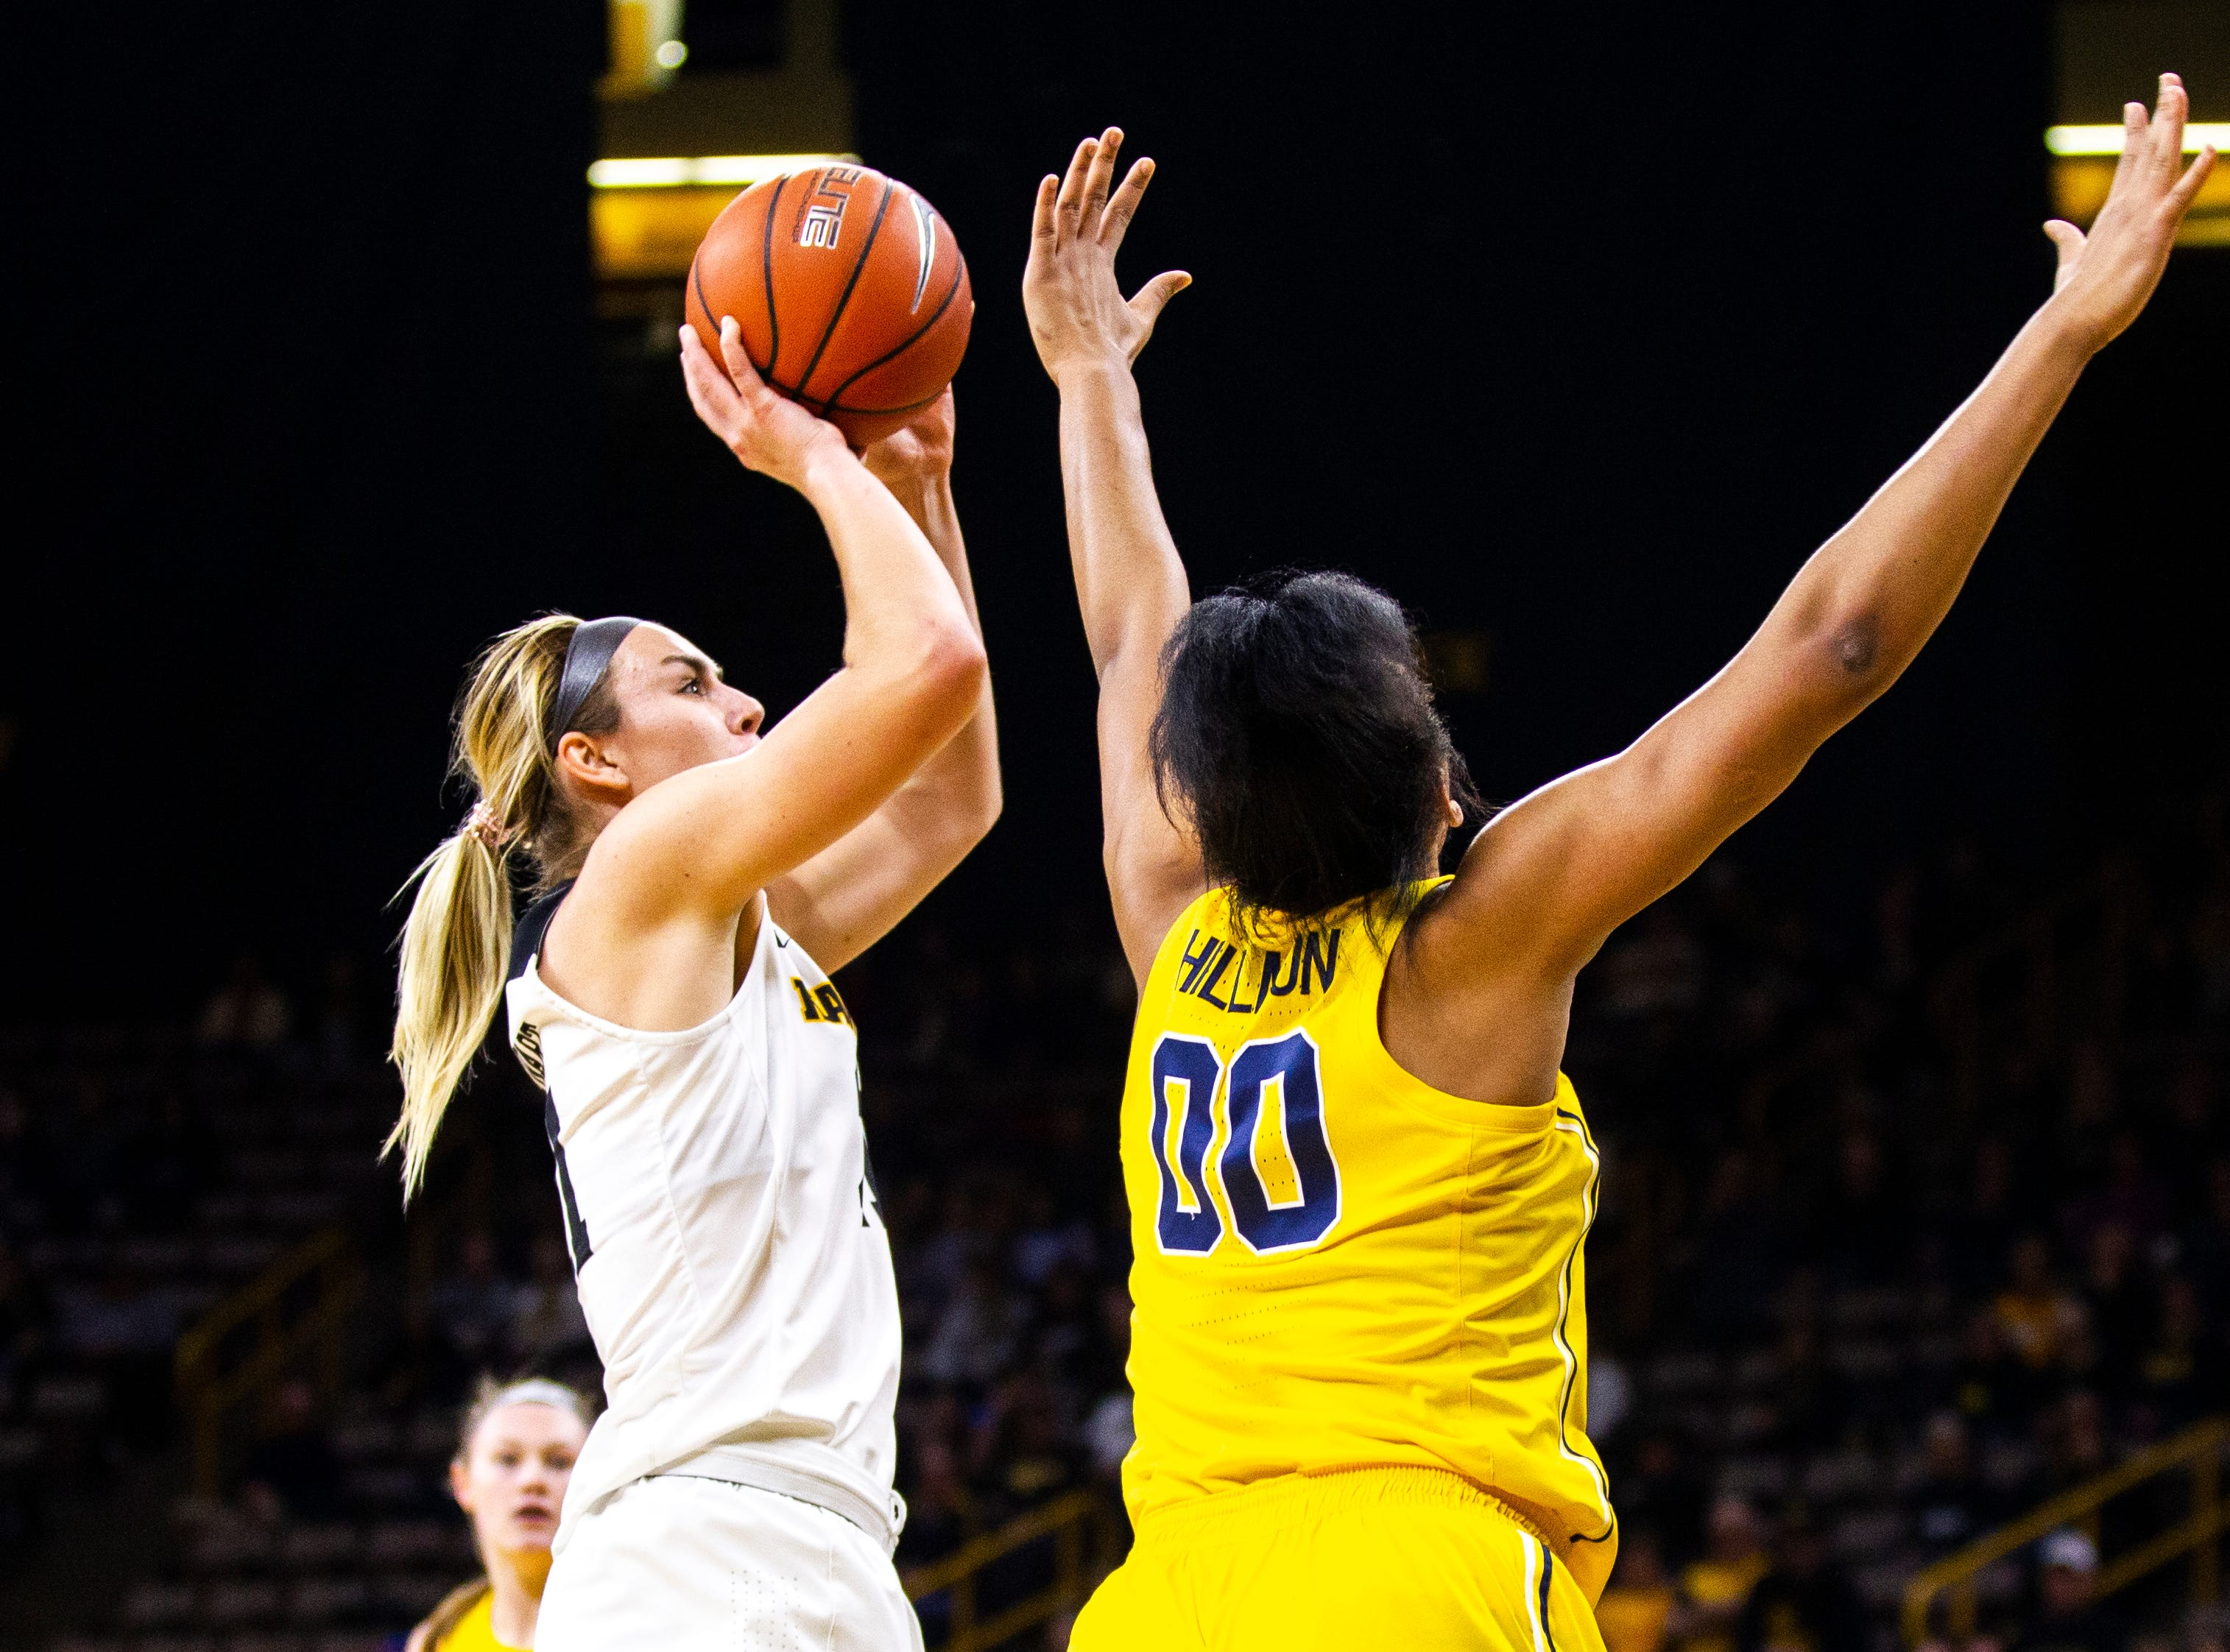 Iowa forward Hannah Stewart (21) attempts a basket while being defended by Michigan forward Naz Hillmon (00) during a NCAA Big Ten Conference women's basketball game on Thursday, Jan. 17, 2019, at Carver-Hawkeye Arena in Iowa City, Iowa.